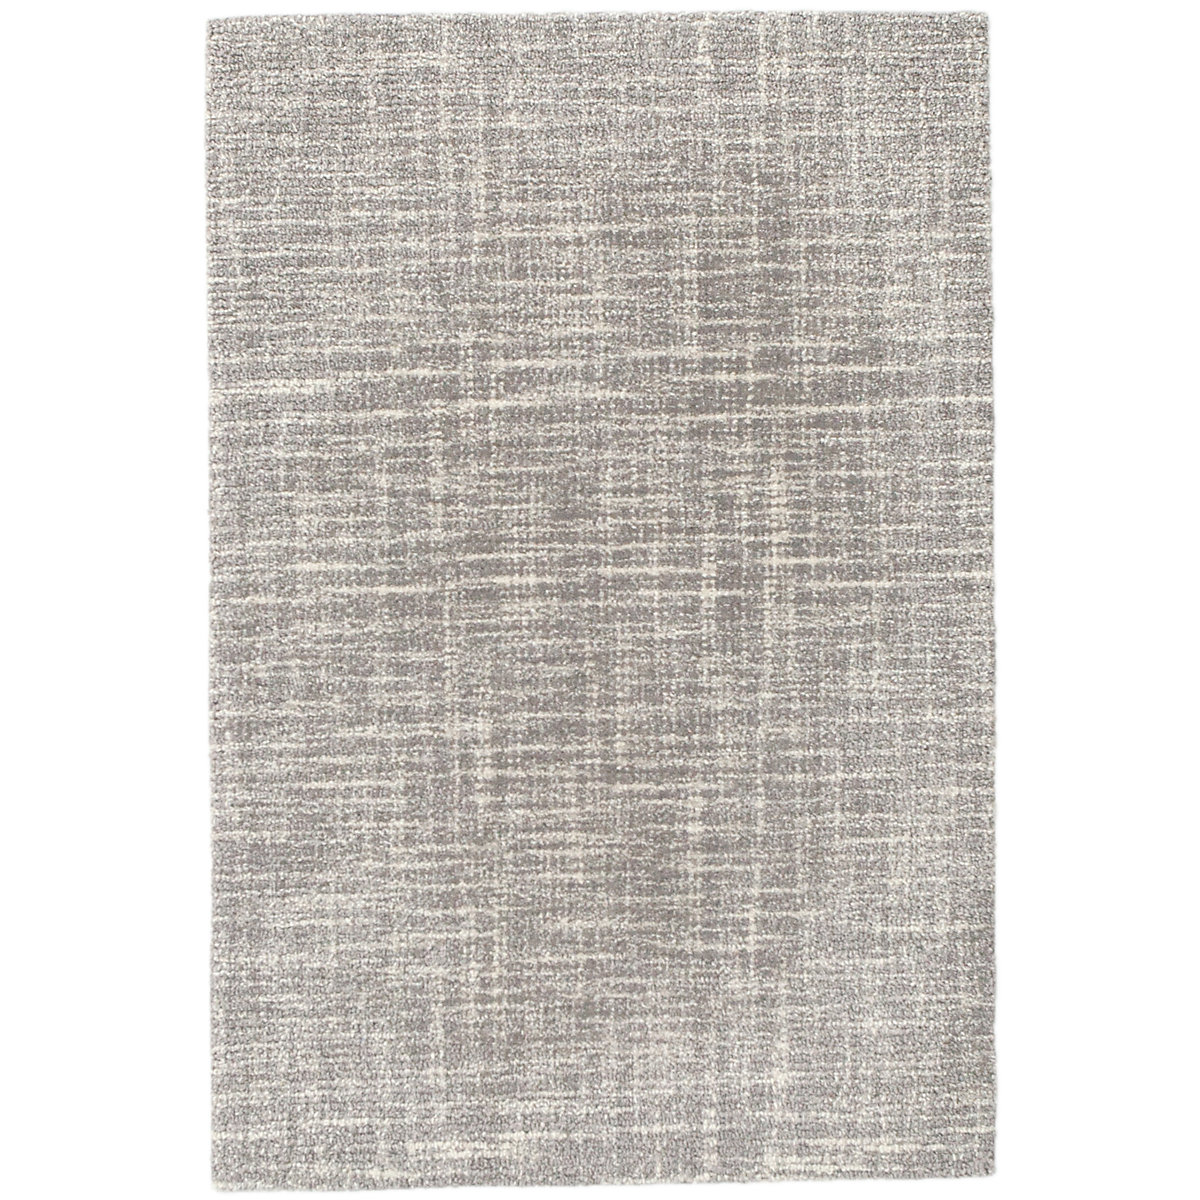 dash albert crosshatch dove grey wool micro hooked rug 4x6 gracious style. Black Bedroom Furniture Sets. Home Design Ideas